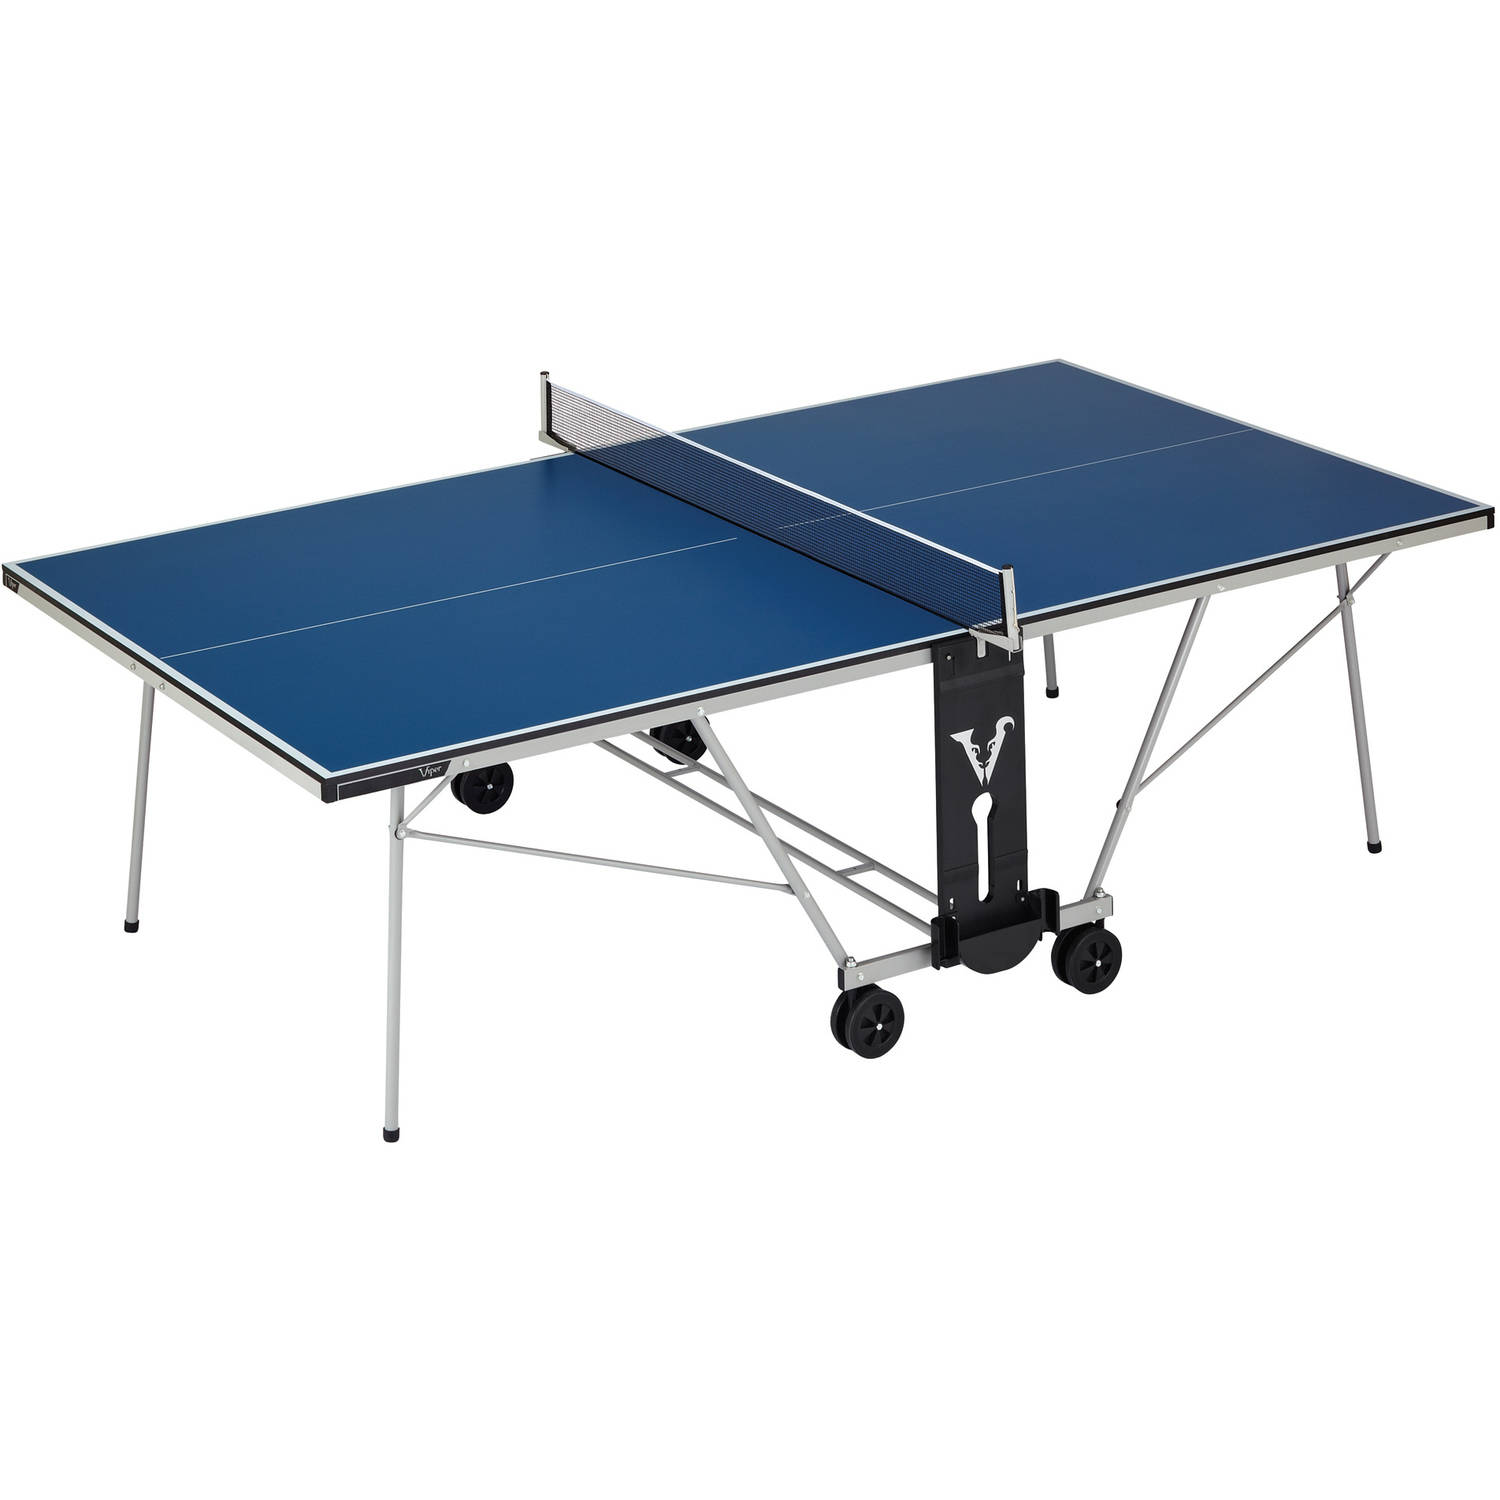 Viper Table Tennis Table III Springfield